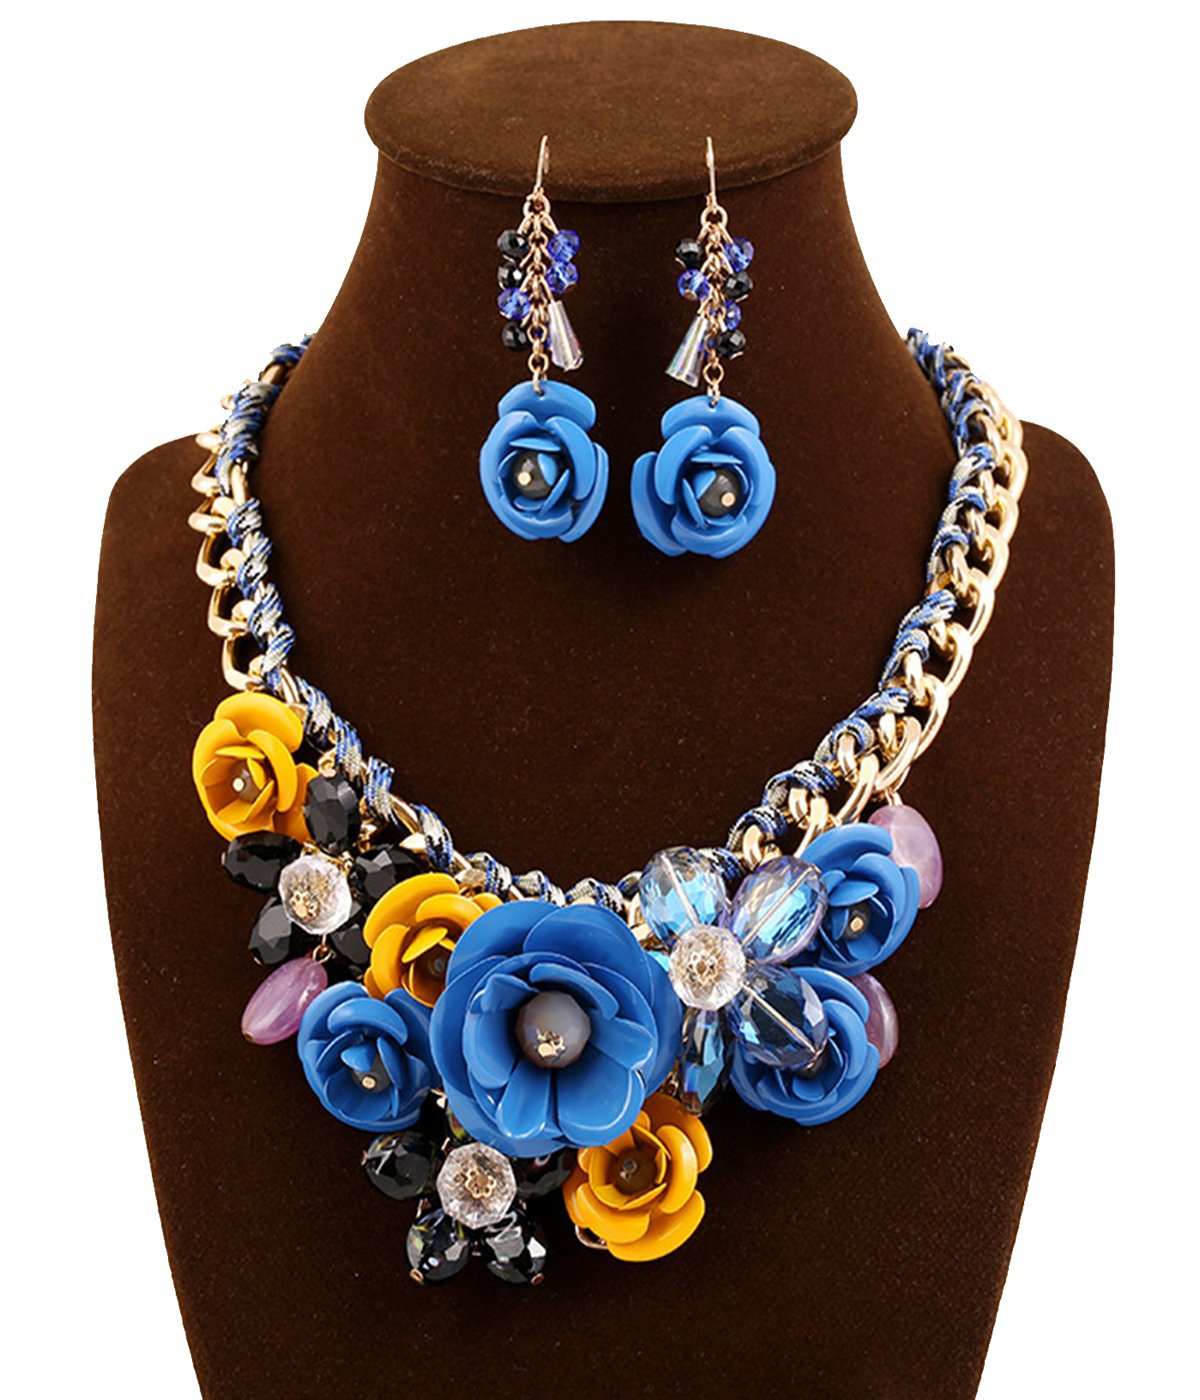 SEKAISORA Ms. Rose Necklace Pendant Transparent Large Resin Crystal Flower Necklace Earrings Set Statement Blue+Yellow